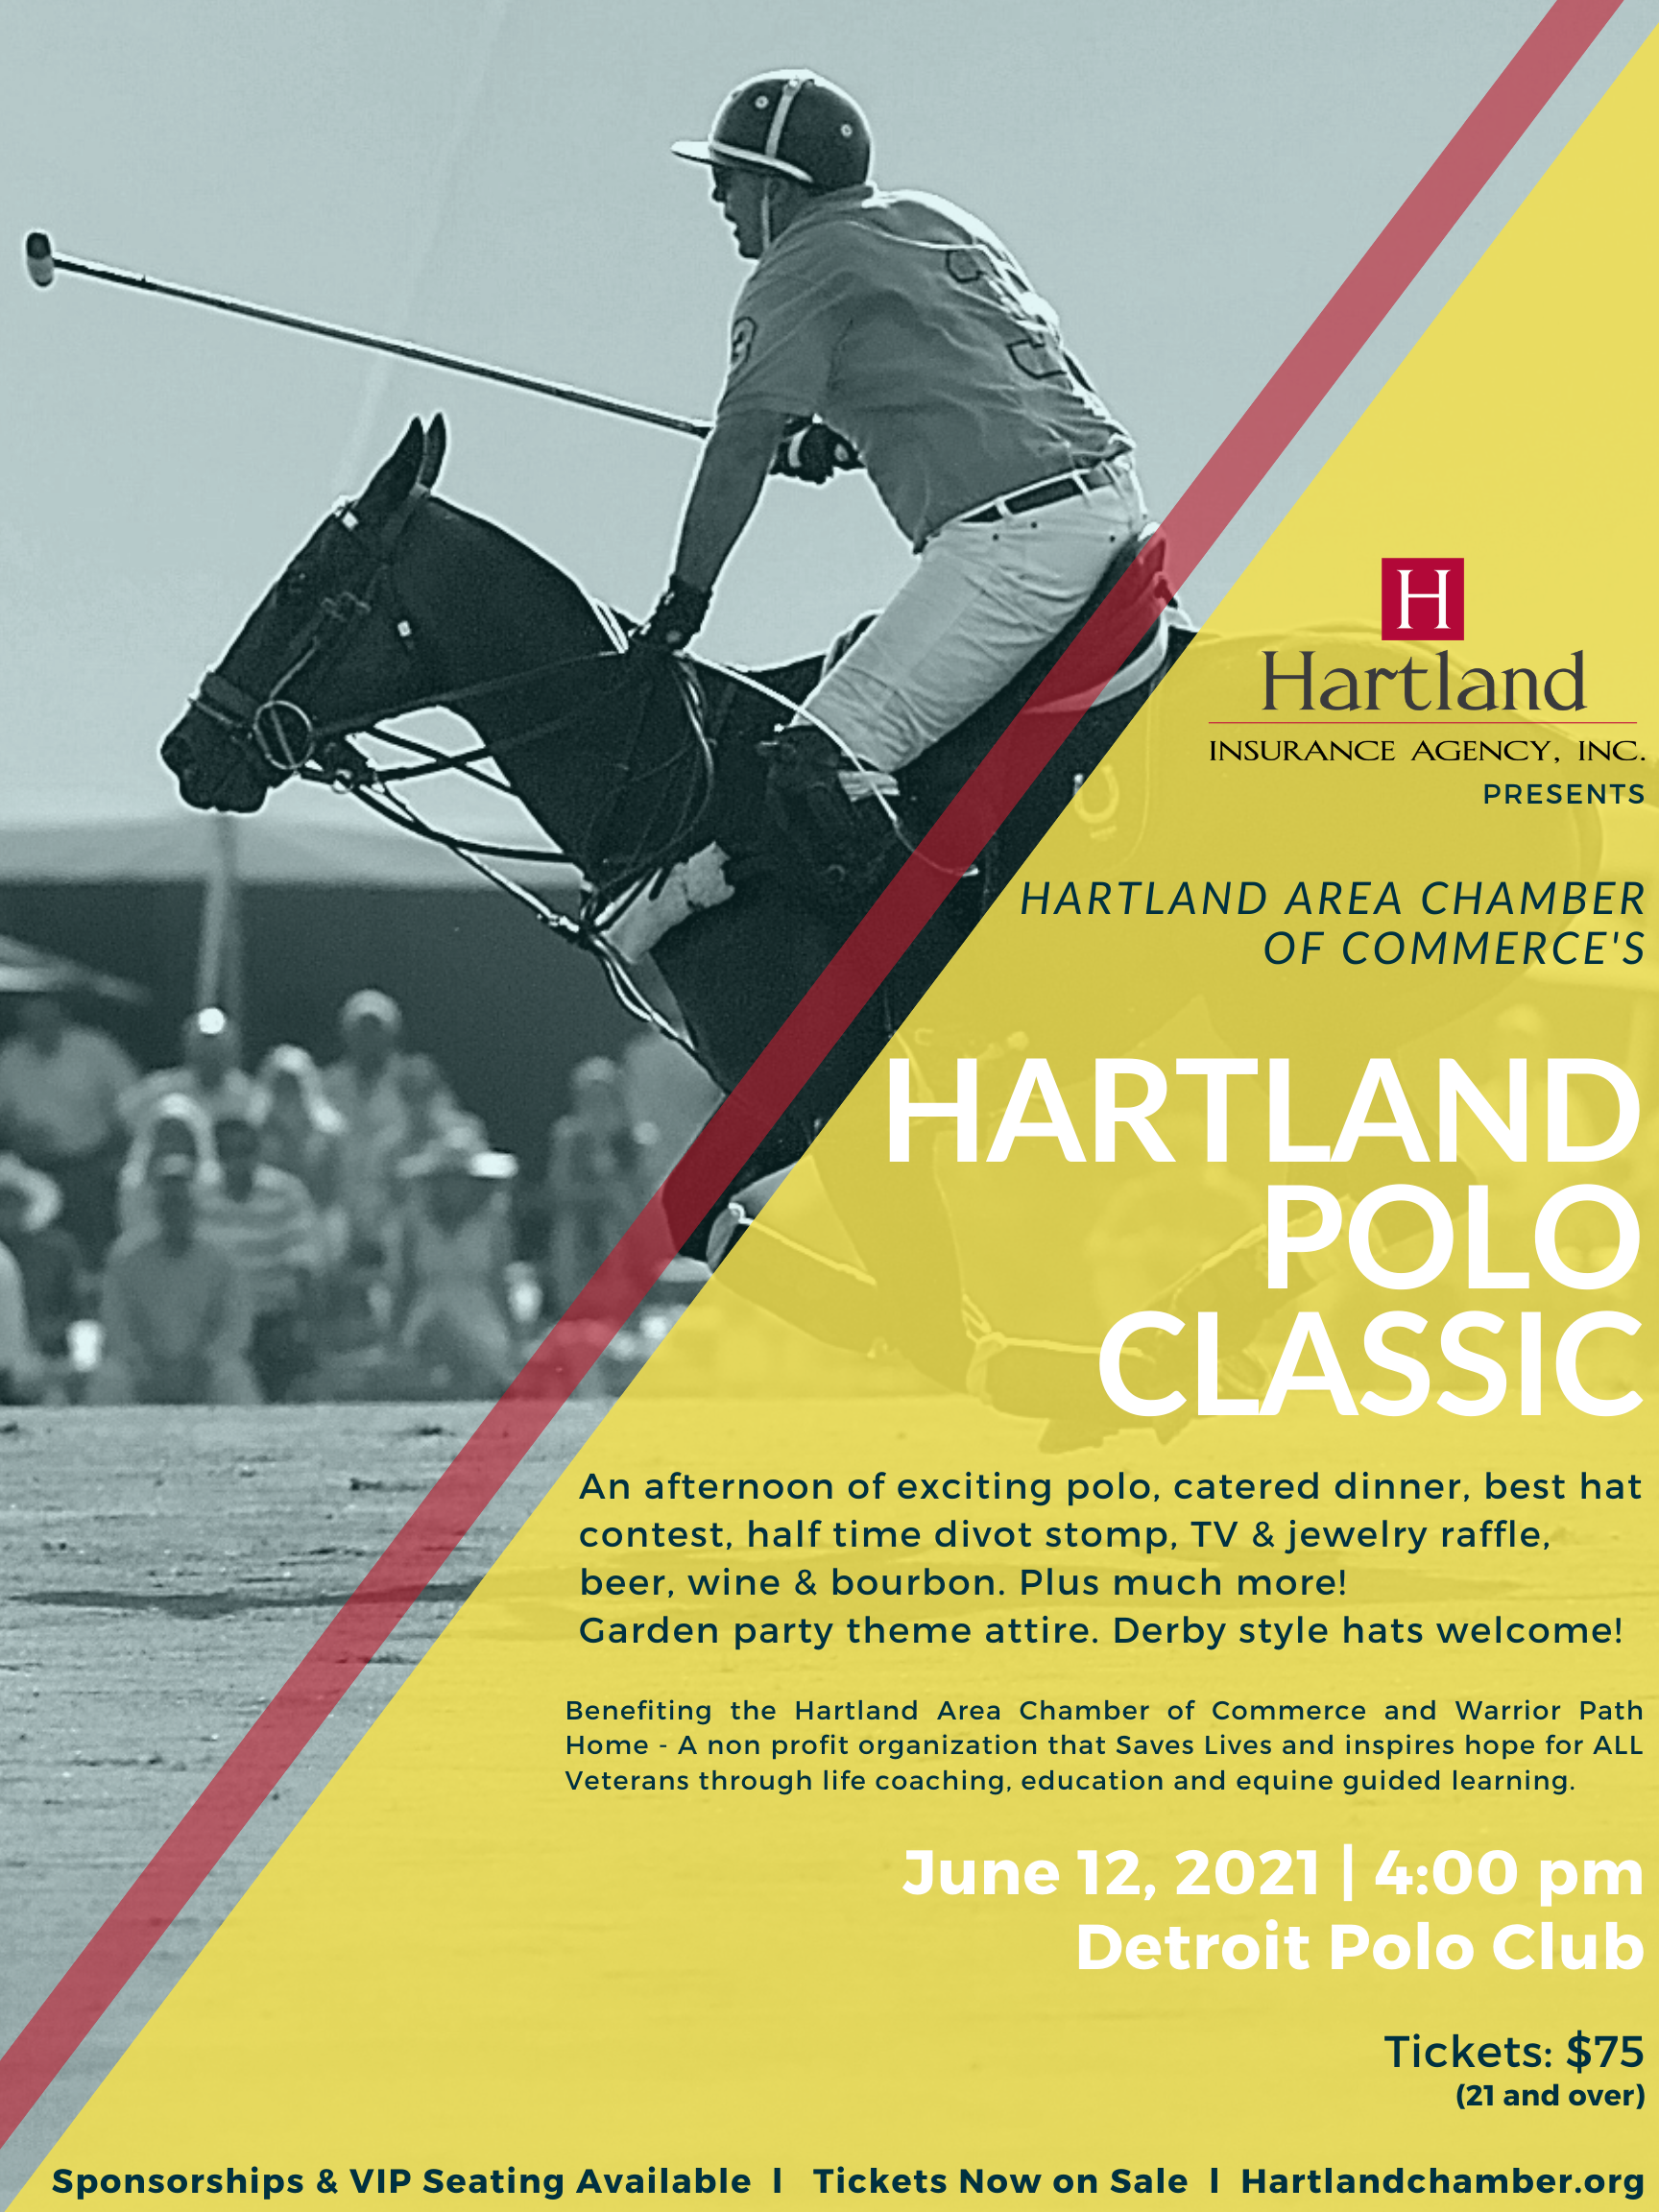 https://www.hartlandchamber.org/events/details/2021-annual-hartland-polo-classic-4514